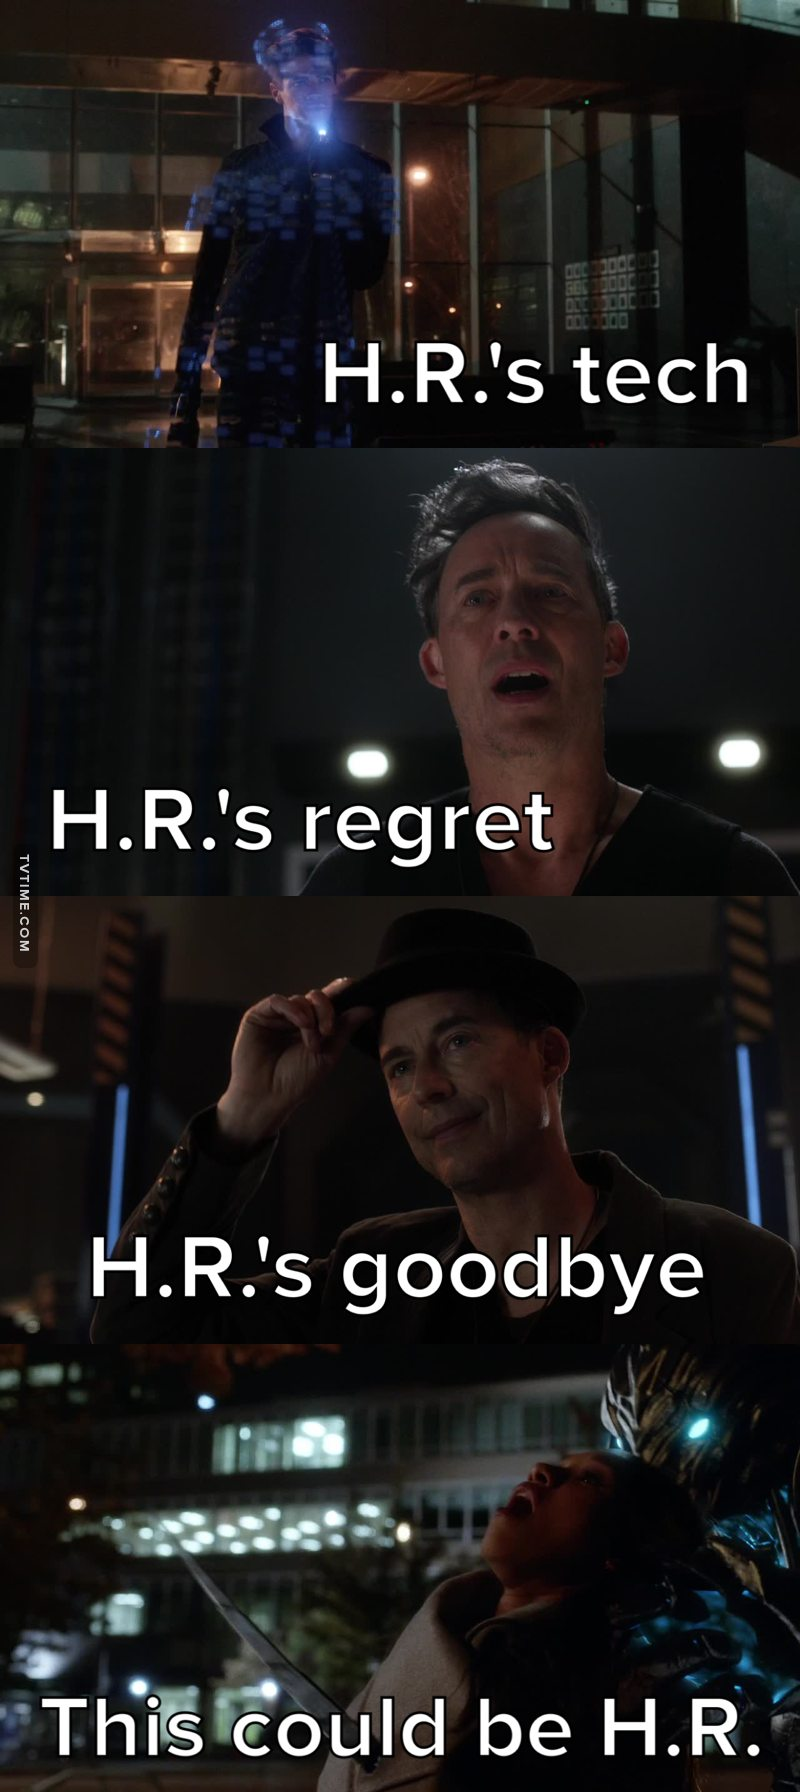 I have a hunch Savitar actually kills H.R. who intentionally cloaked himself as Iris.